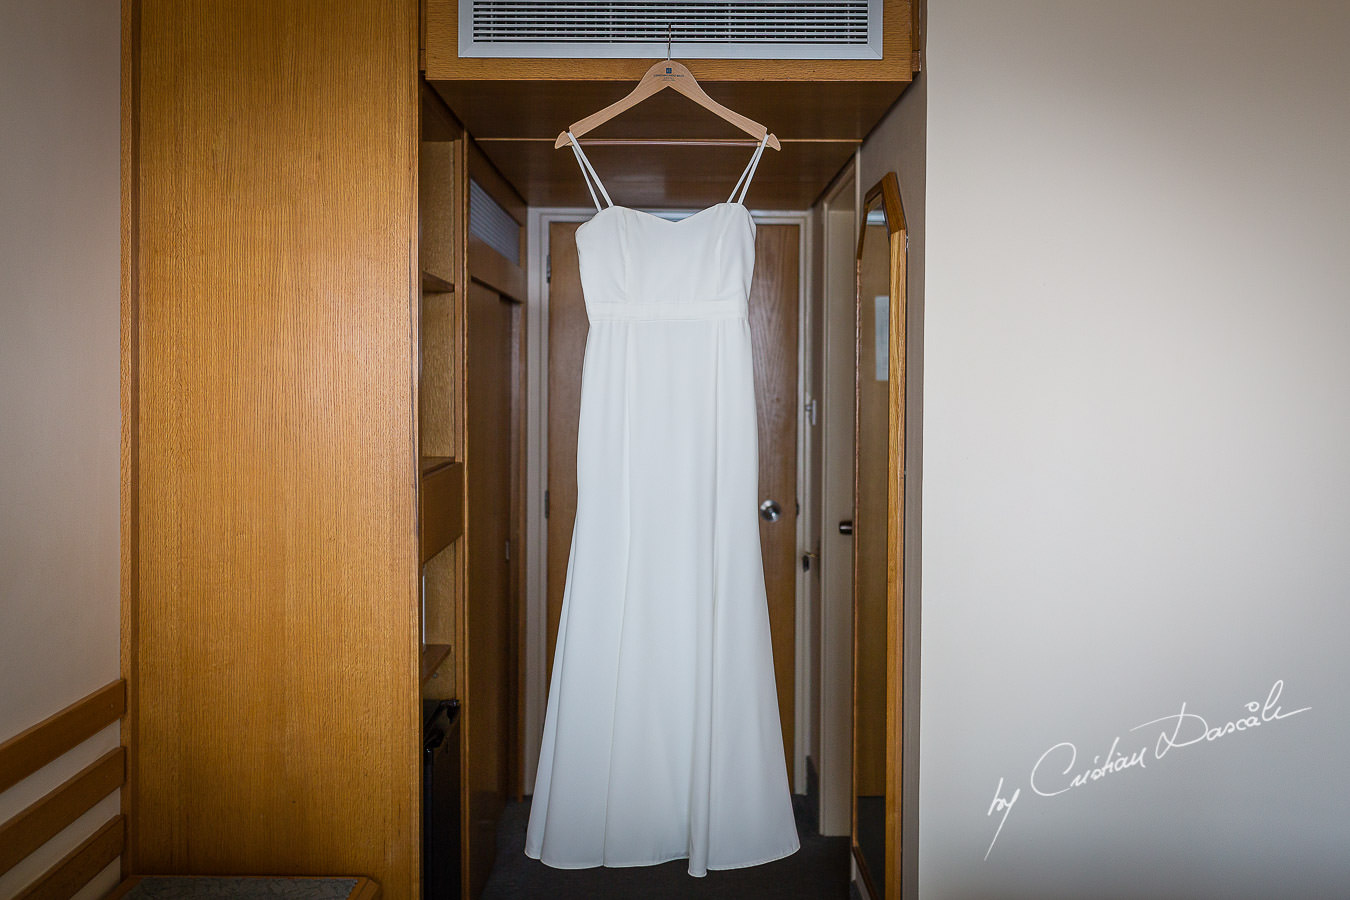 Bride's dress photographed by Cristian Dascalu at Athena Beach Hotel in Paphos, Cyprus, during a symbolic wedding.